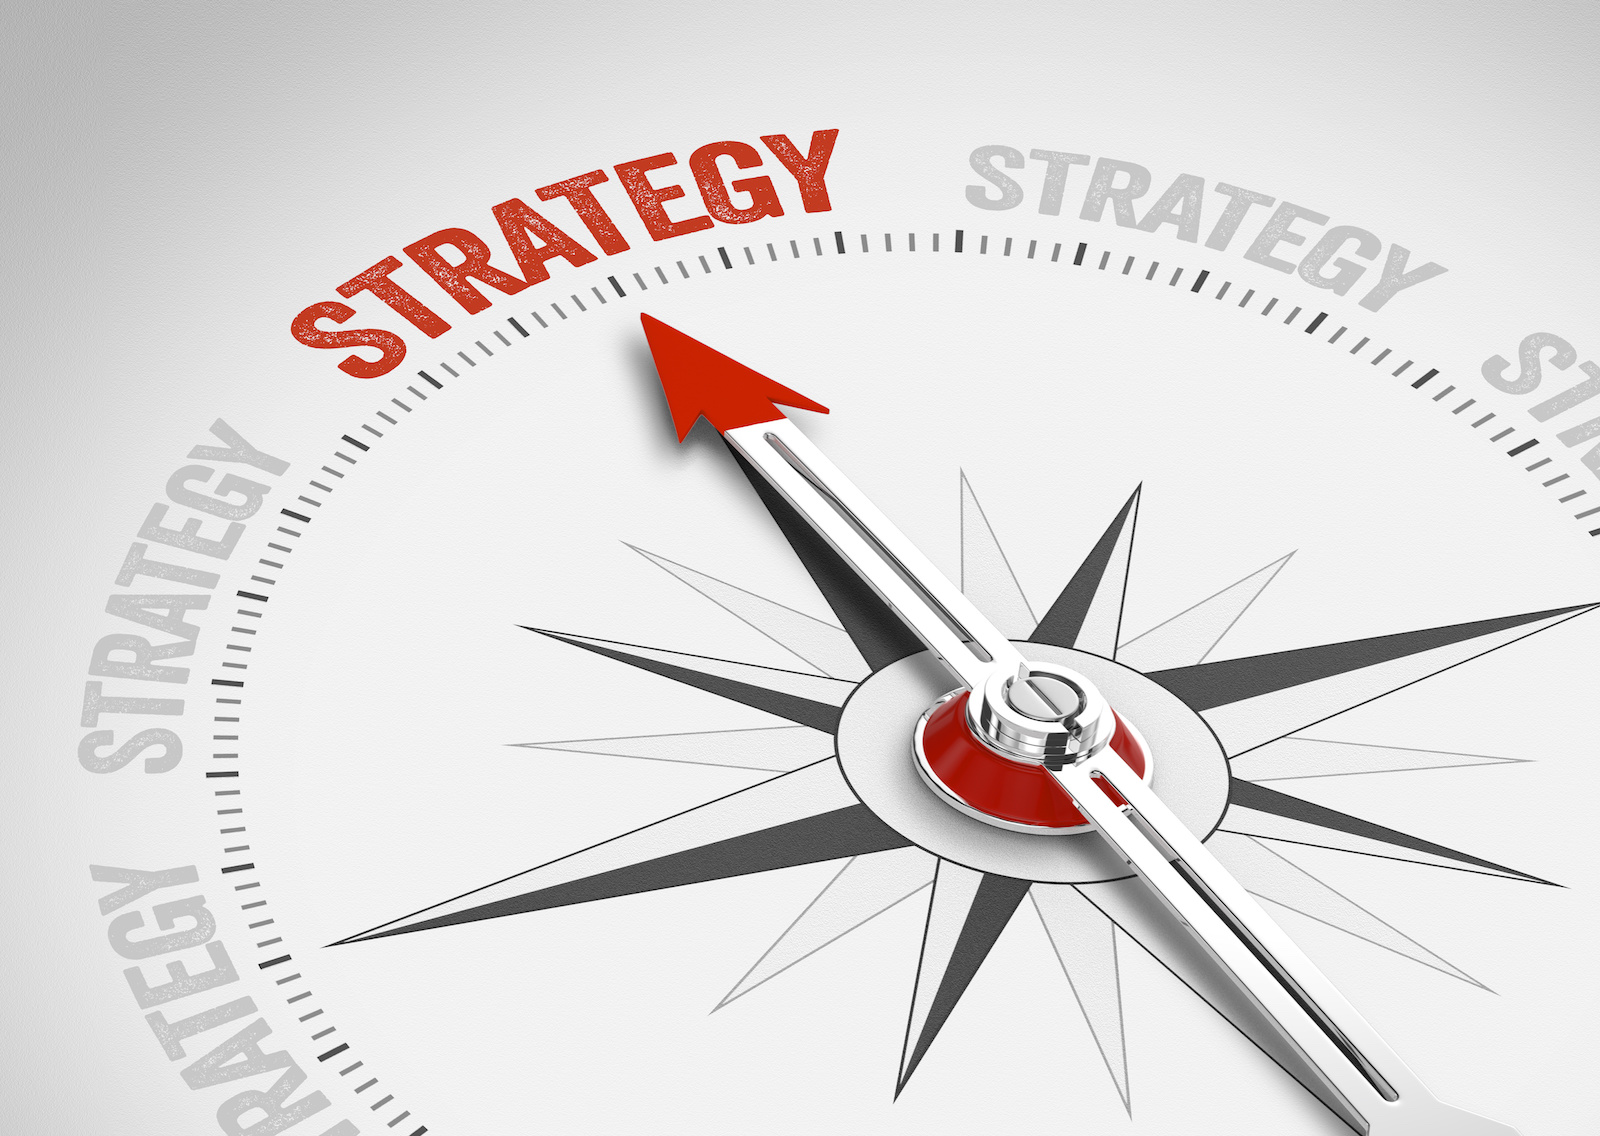 Why do we need a new approach to strategy?